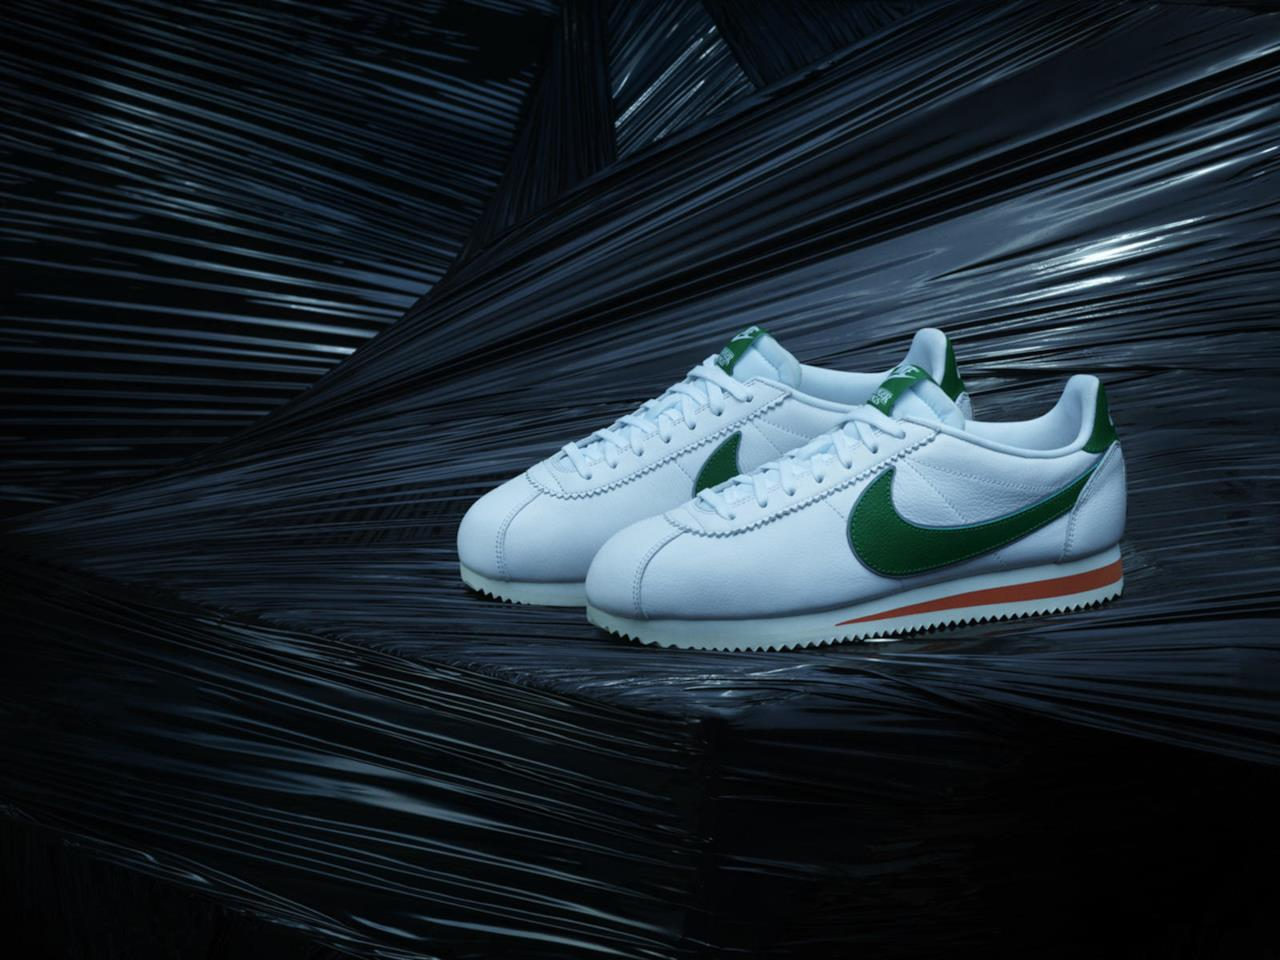 Le Nike Cortez in tema Stranger Things